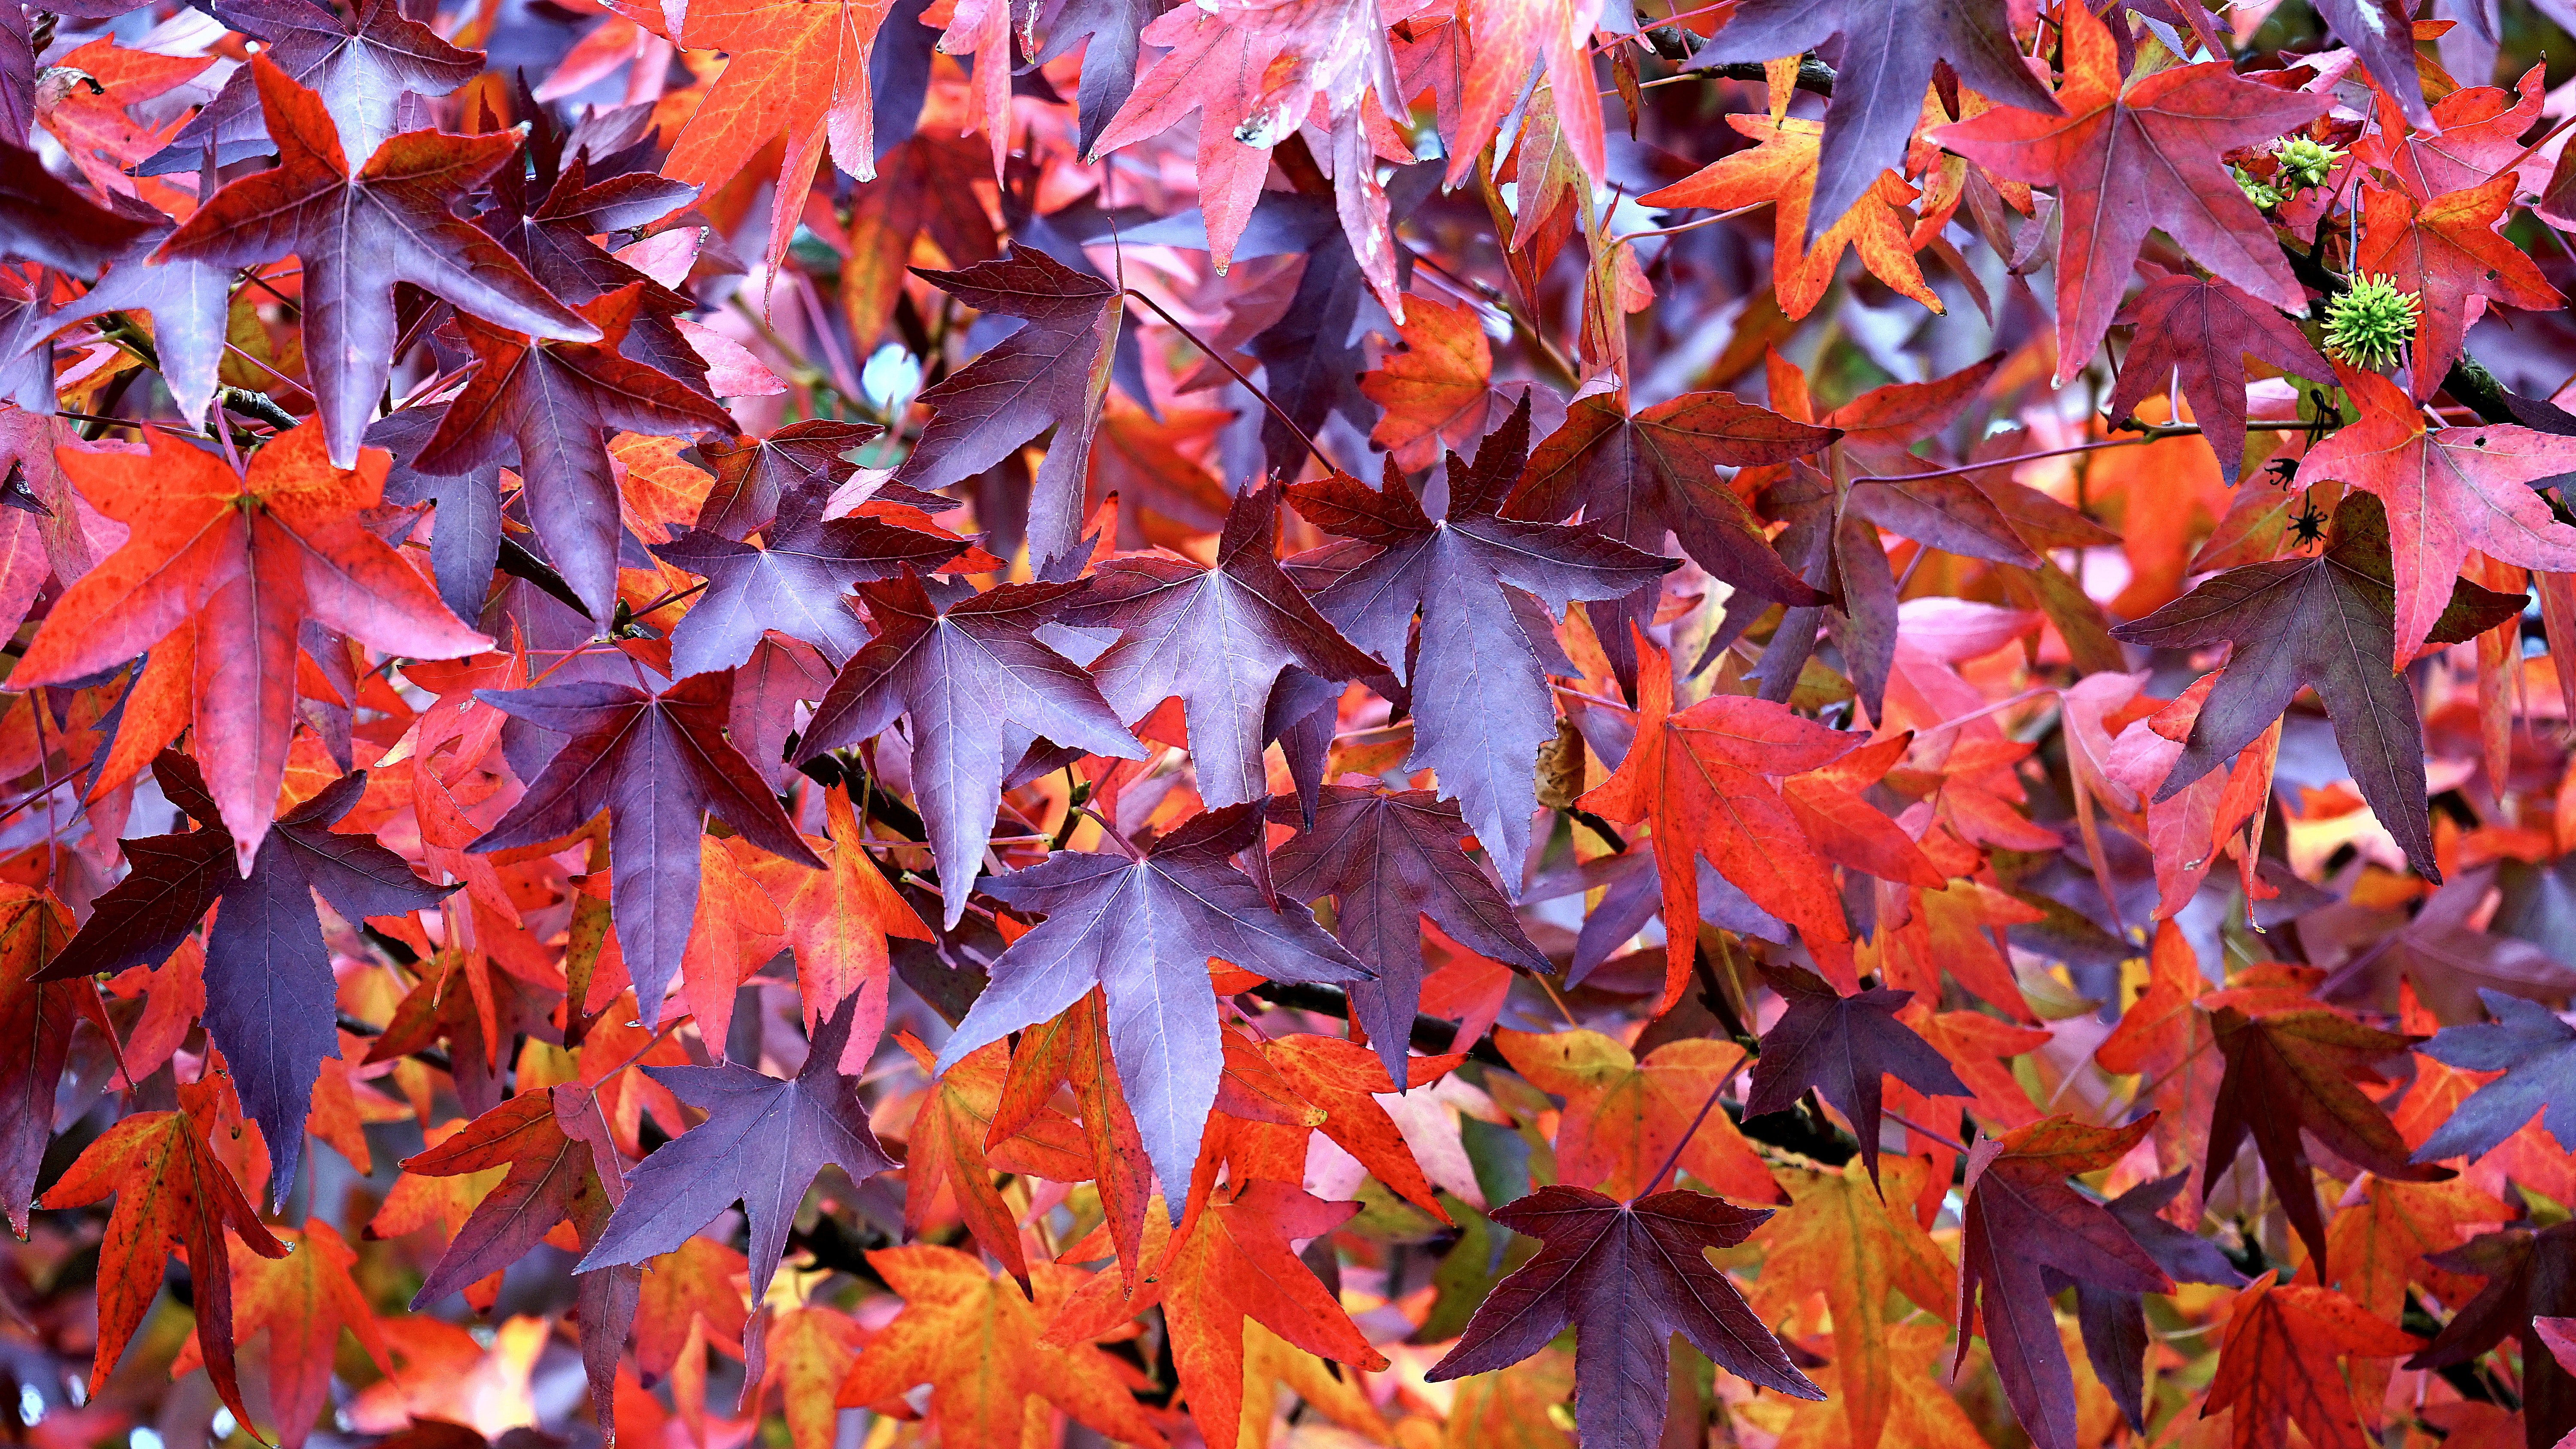 Maroon and Red Leaf in Close Up Photography, Autumn, Maple, Tree, Texture, HQ Photo